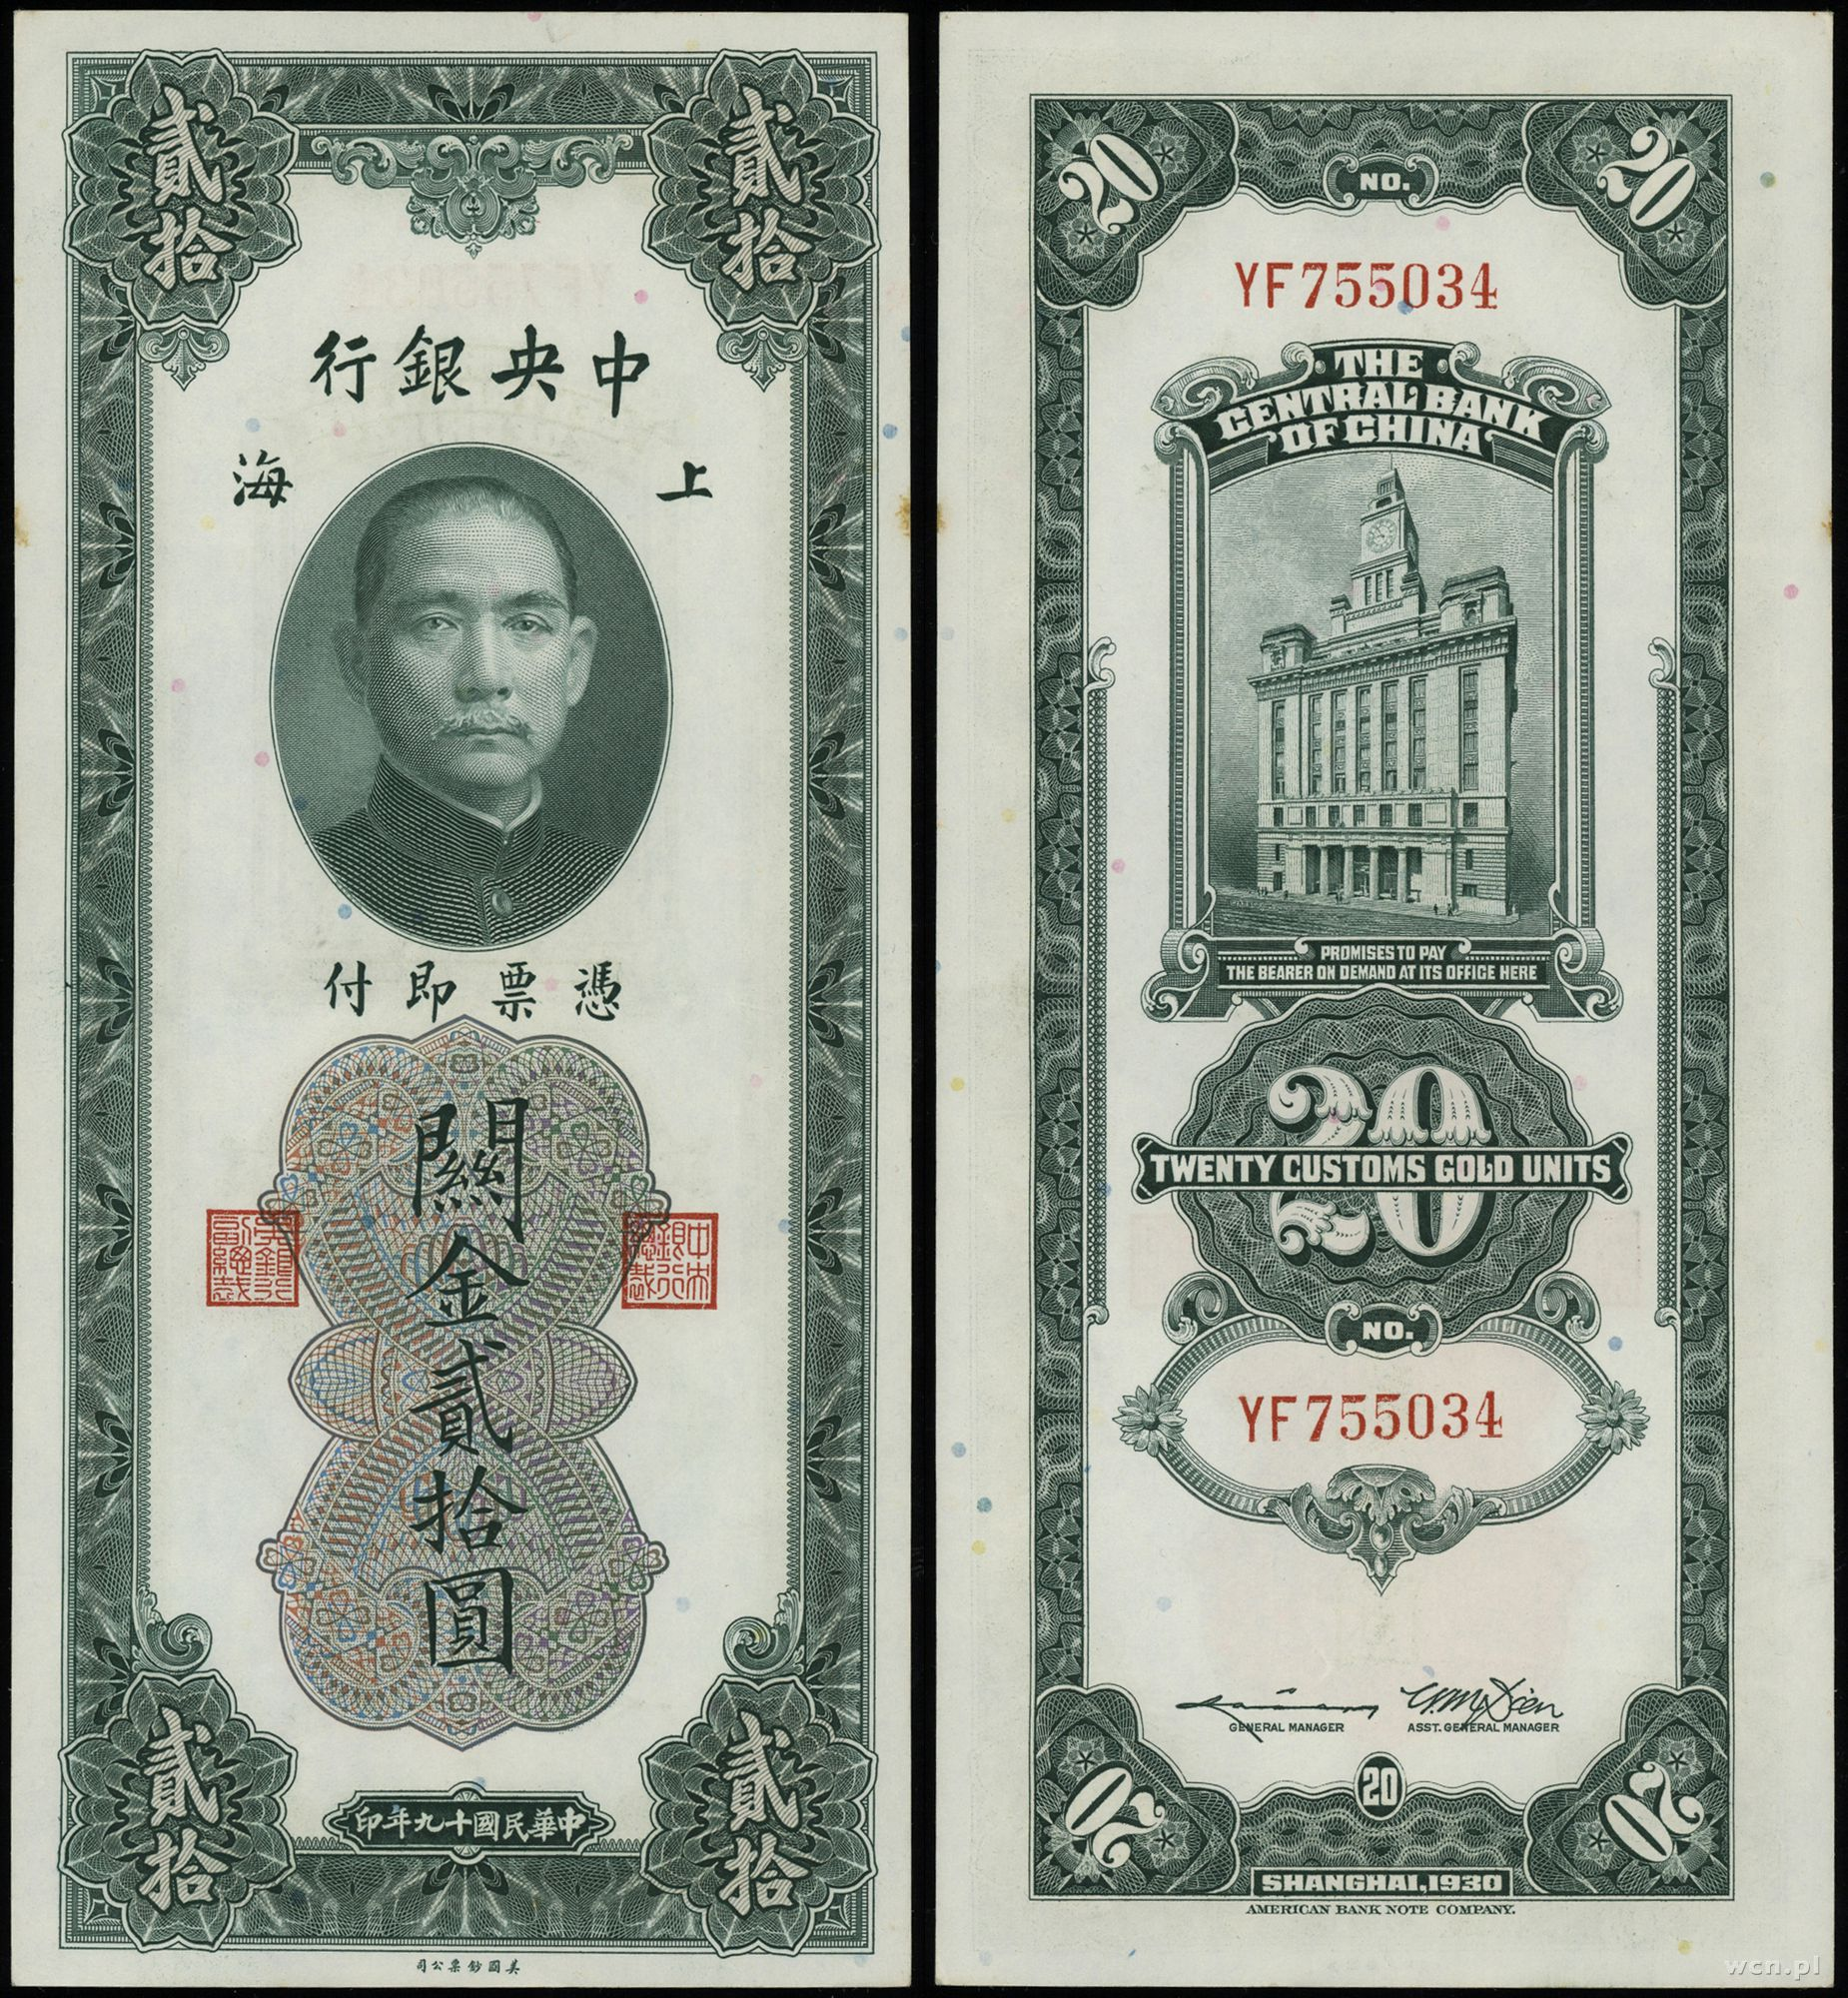 20 customs gold units 1930, Shanghai, seria YF 7